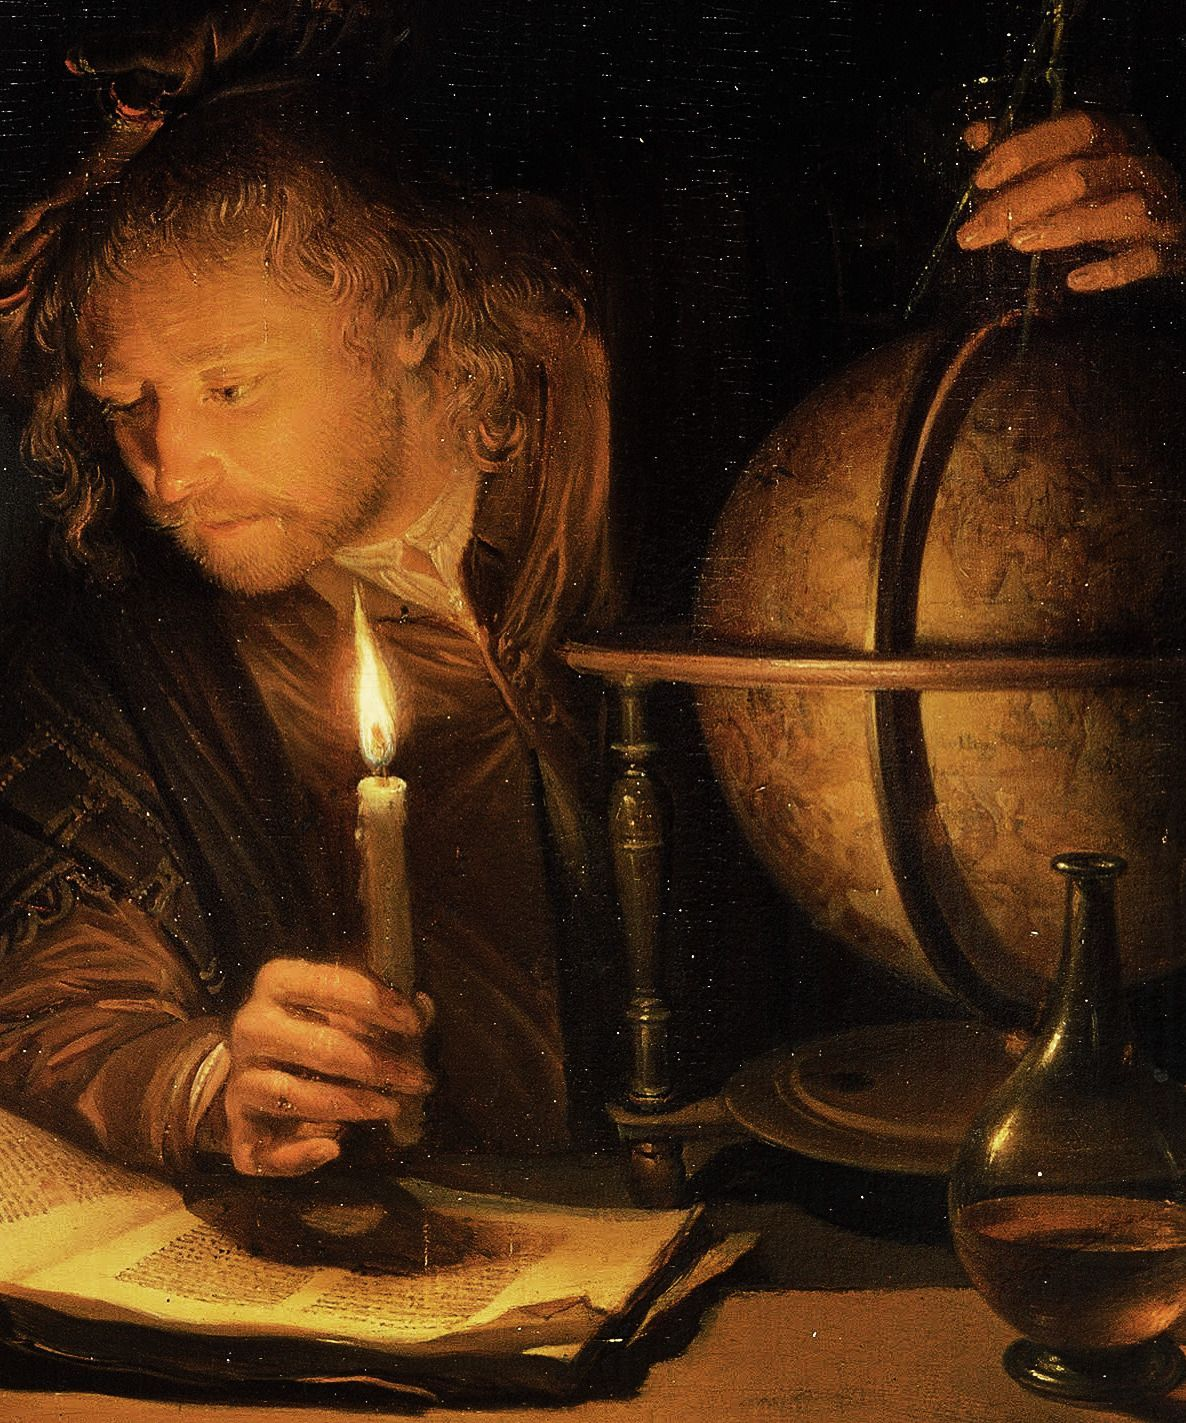 Gerrit Dou, Astronomer by Candlelight